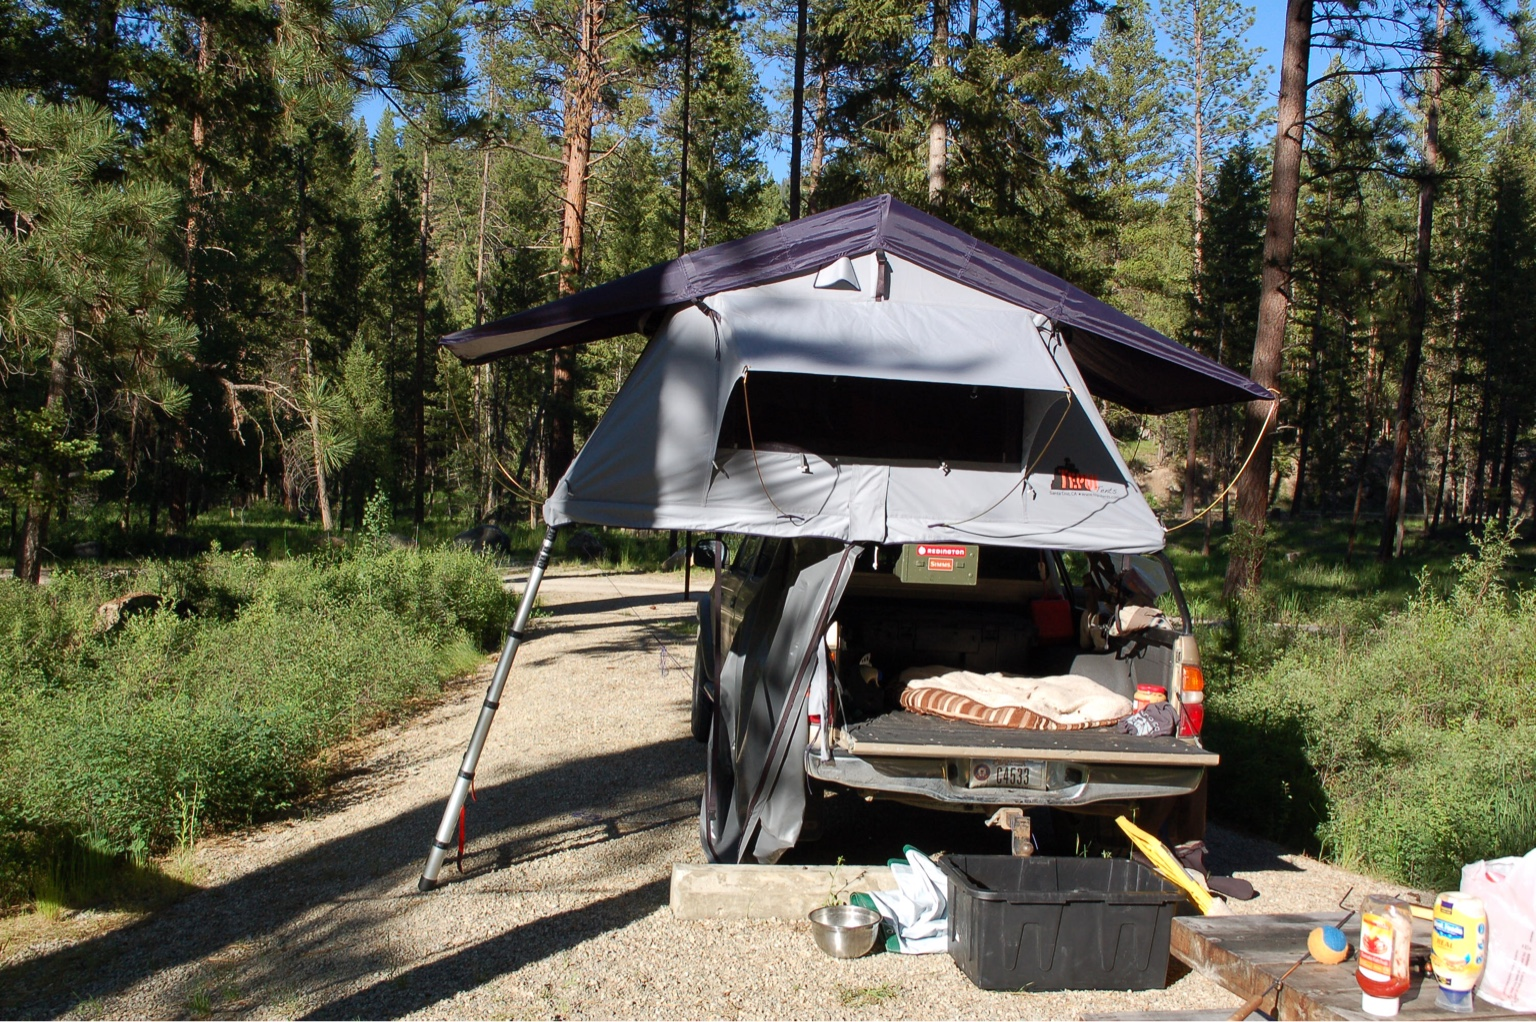 Annex MaterialAnnex Sold separately. Annex AreaAnnex Sold separately. Travel Cover Material1000g Heavy Duty PVC Weight (w/ annex)130 lbs & For sale: Hamilton MT. Tepui roof top tent - Expedition Portal